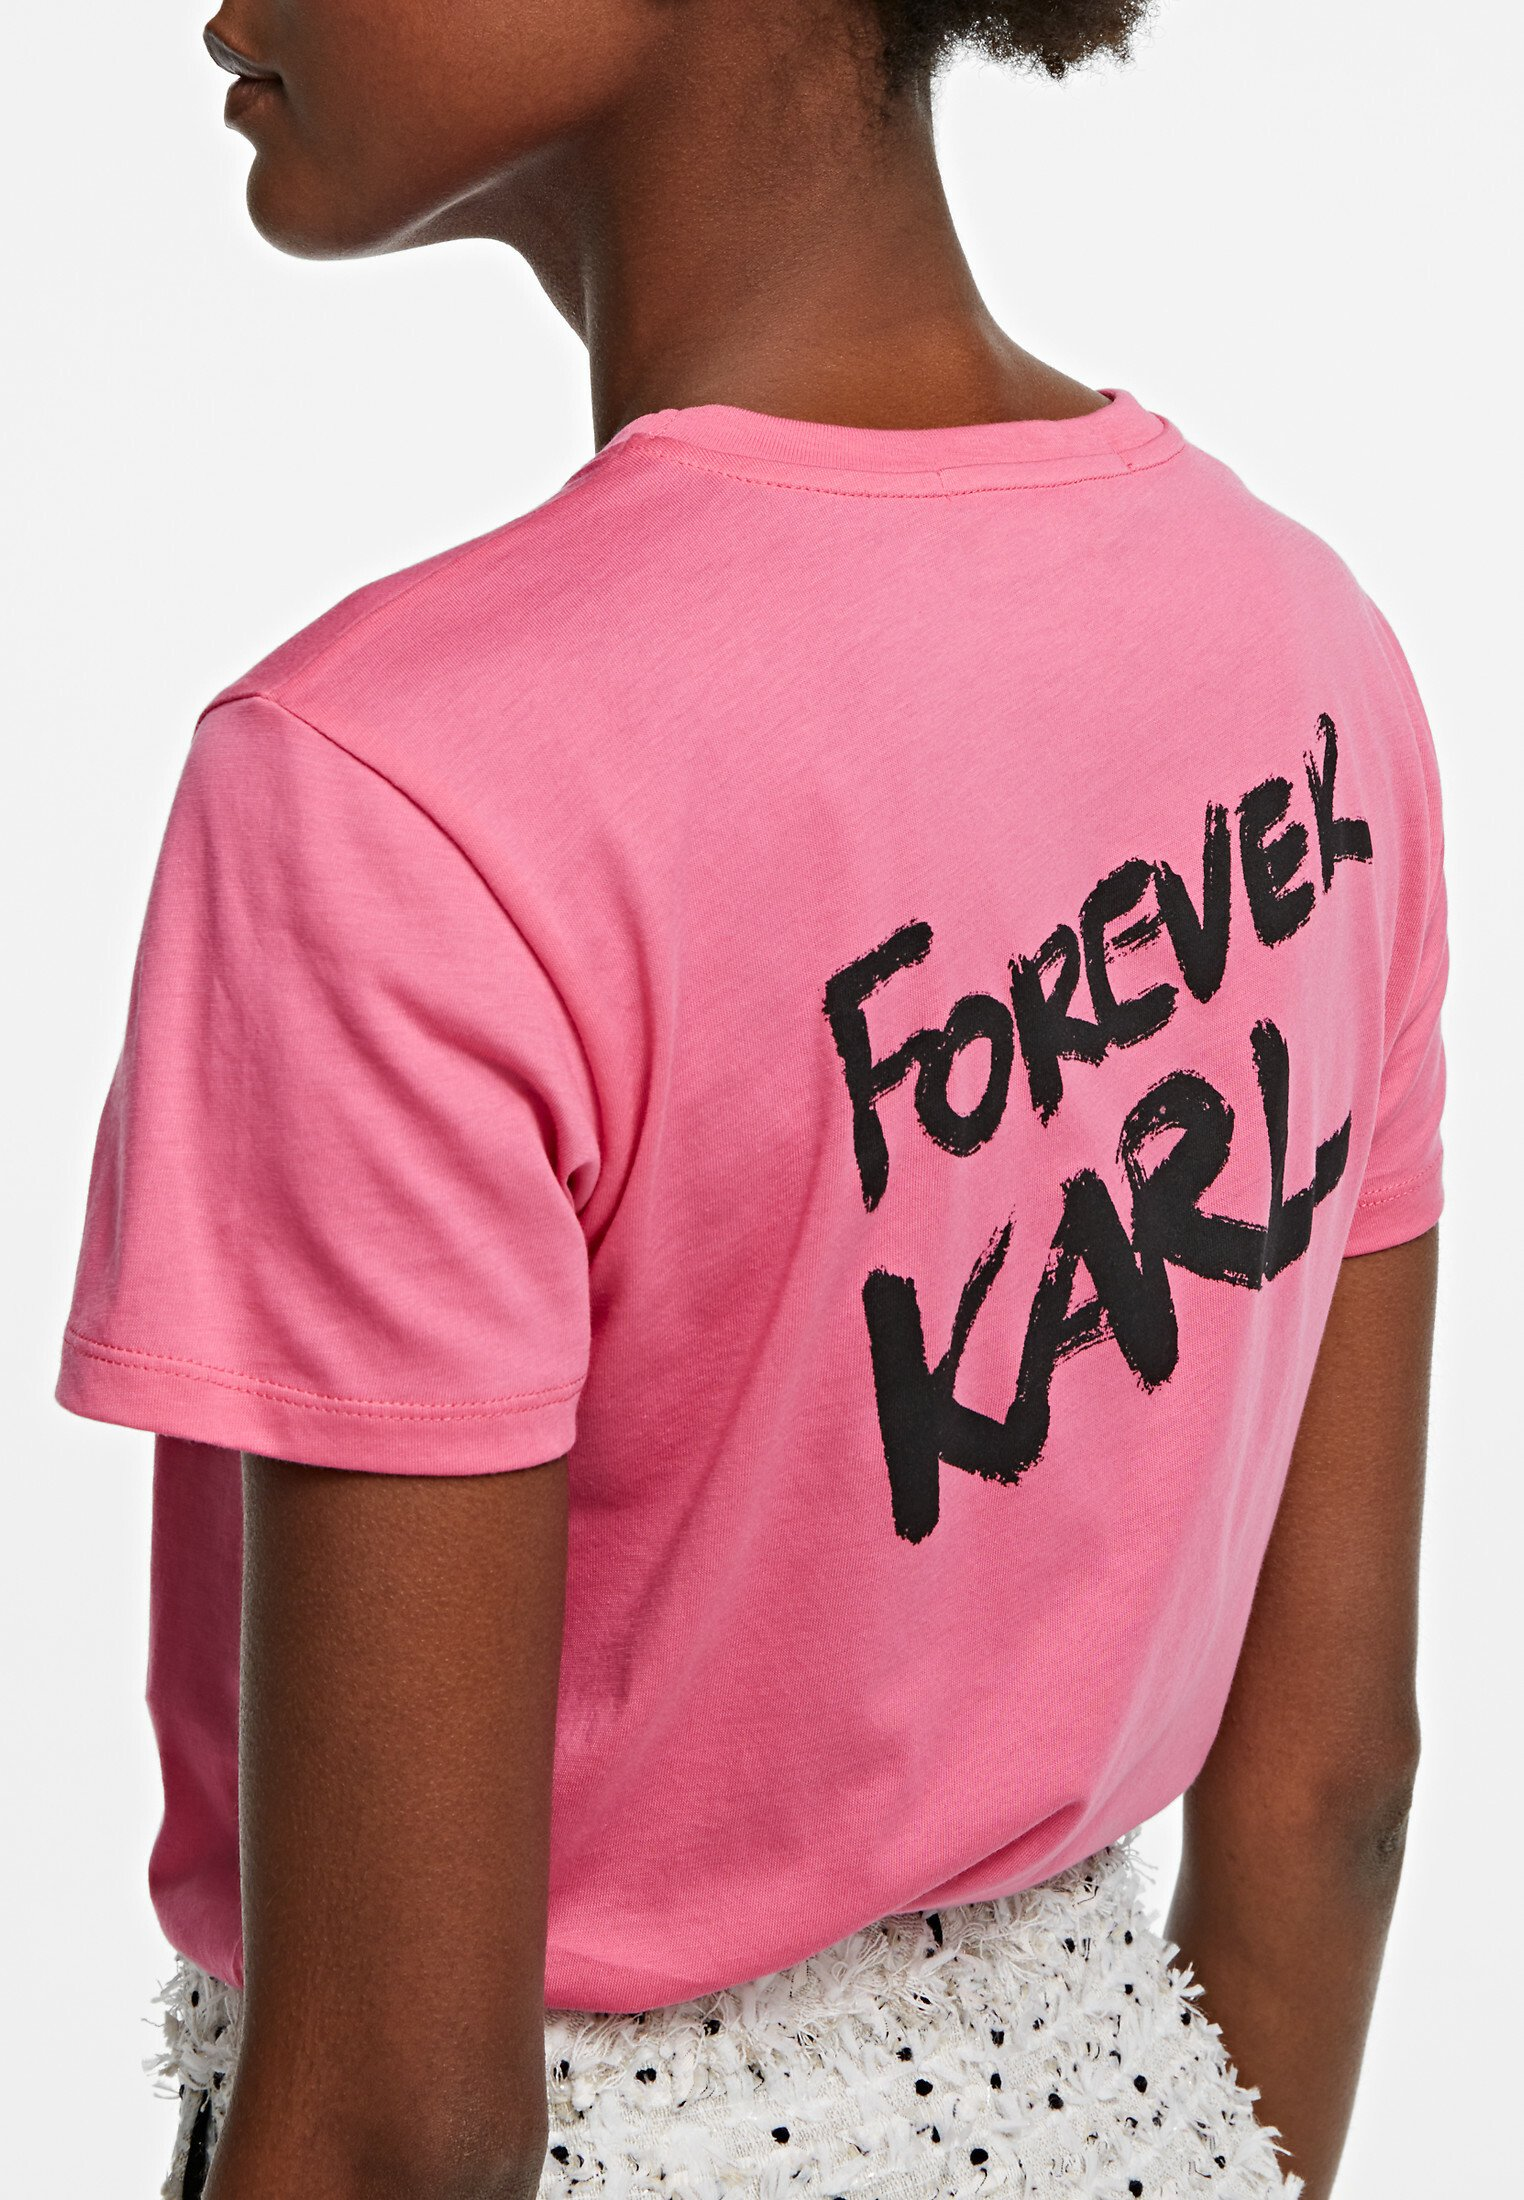 Reliable Women's Clothing KARL LAGERFELD Print T-shirt carmine rose QKl2aSTVs